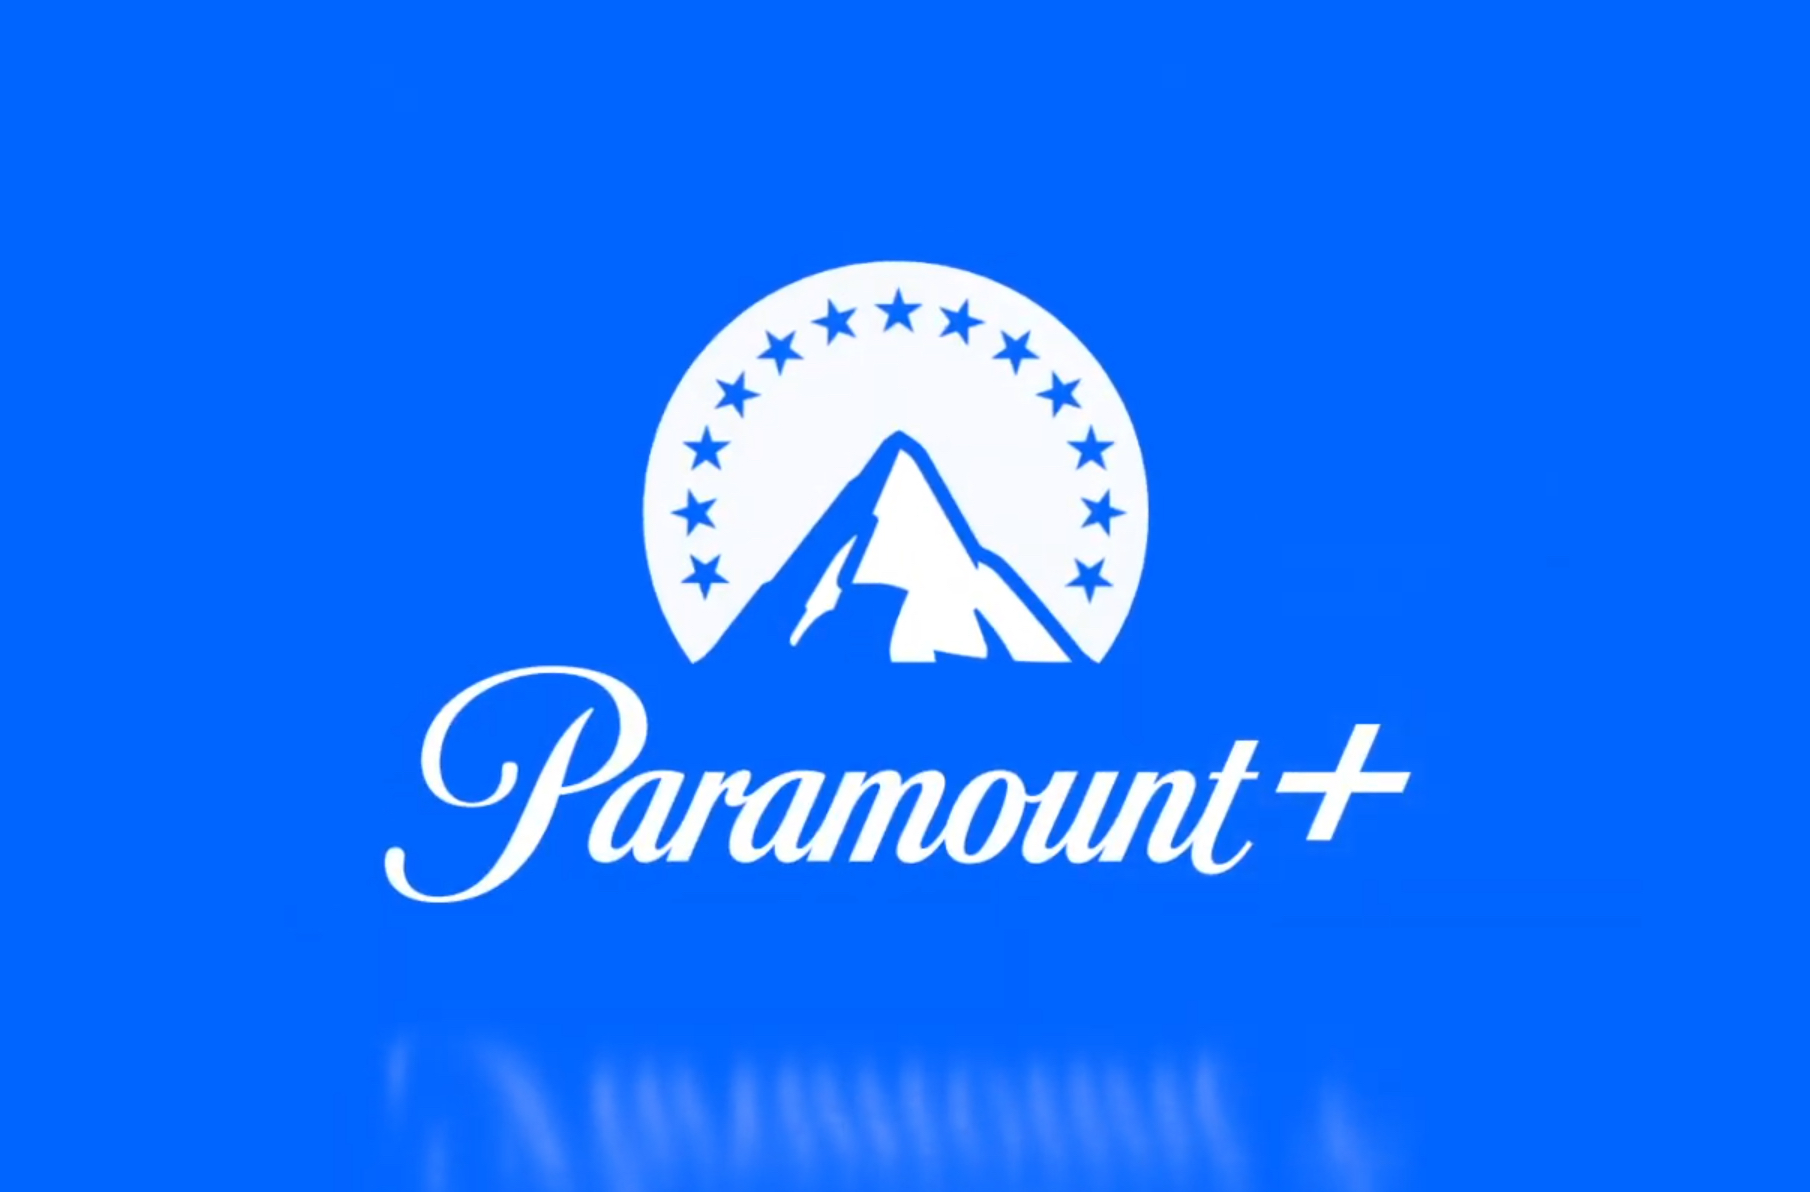 ViacomCBS to rebrand CBS All Access streaming service as 'Paramount+'